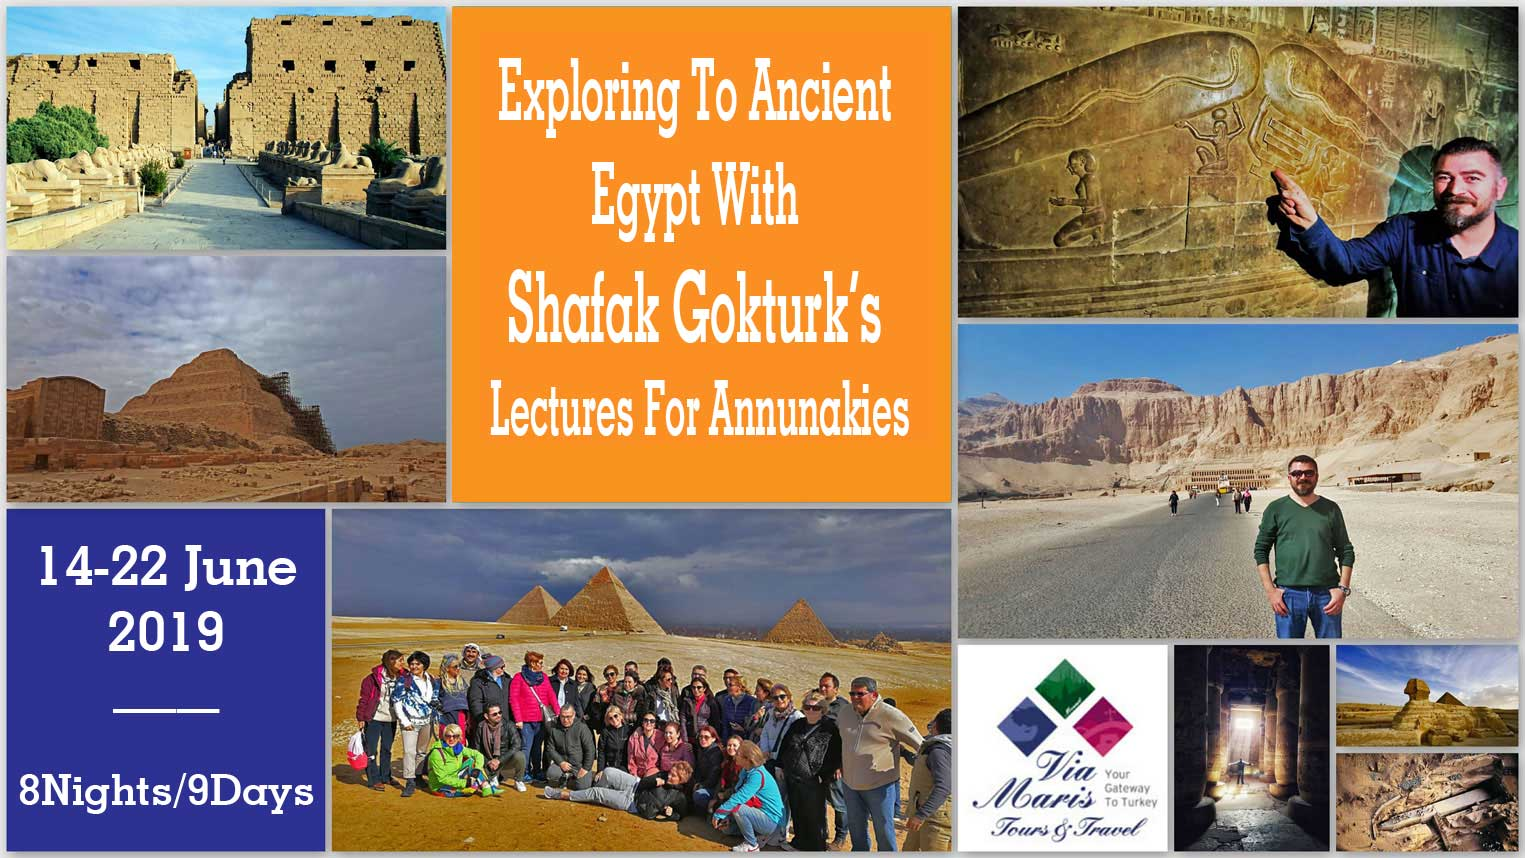 Exploring To Ancient Egypt With Shafak Gokturk